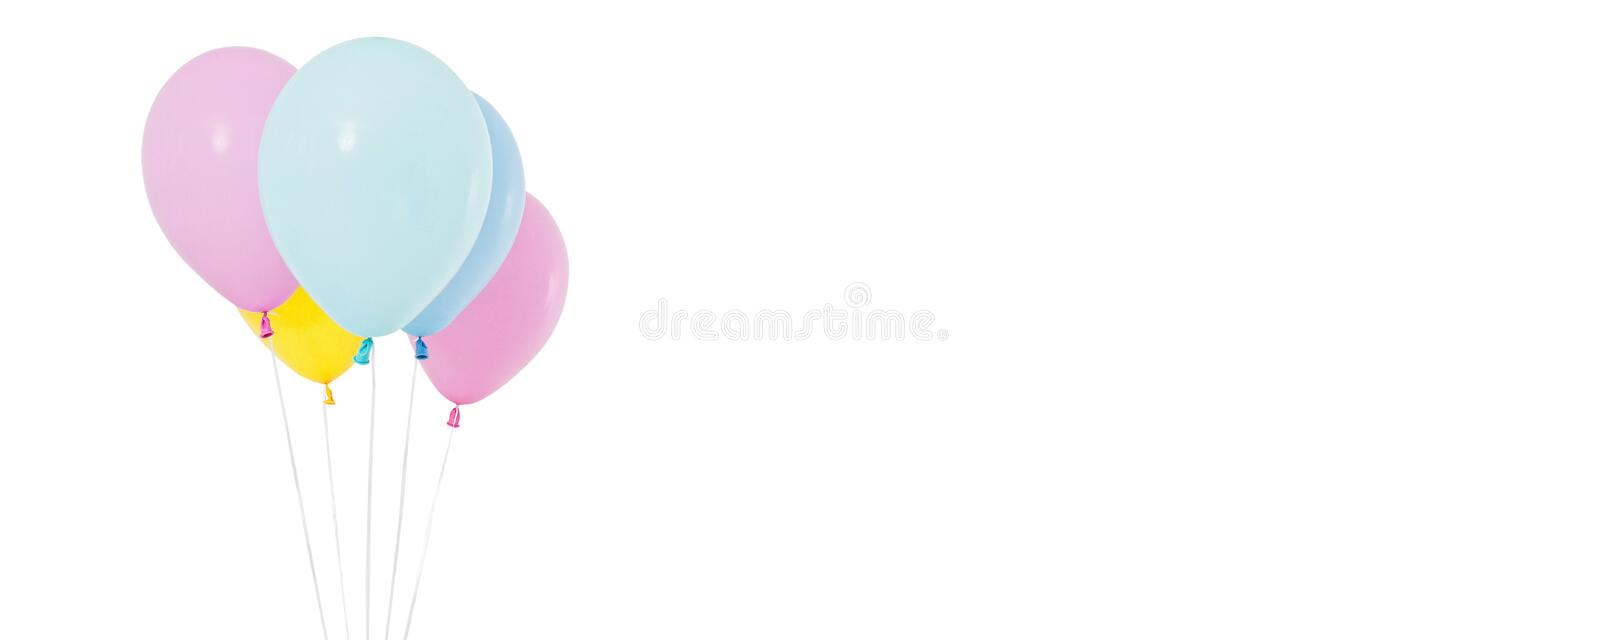 Coloured balloon isolated on white background, collage holiday, birthday balloons royalty free stock images